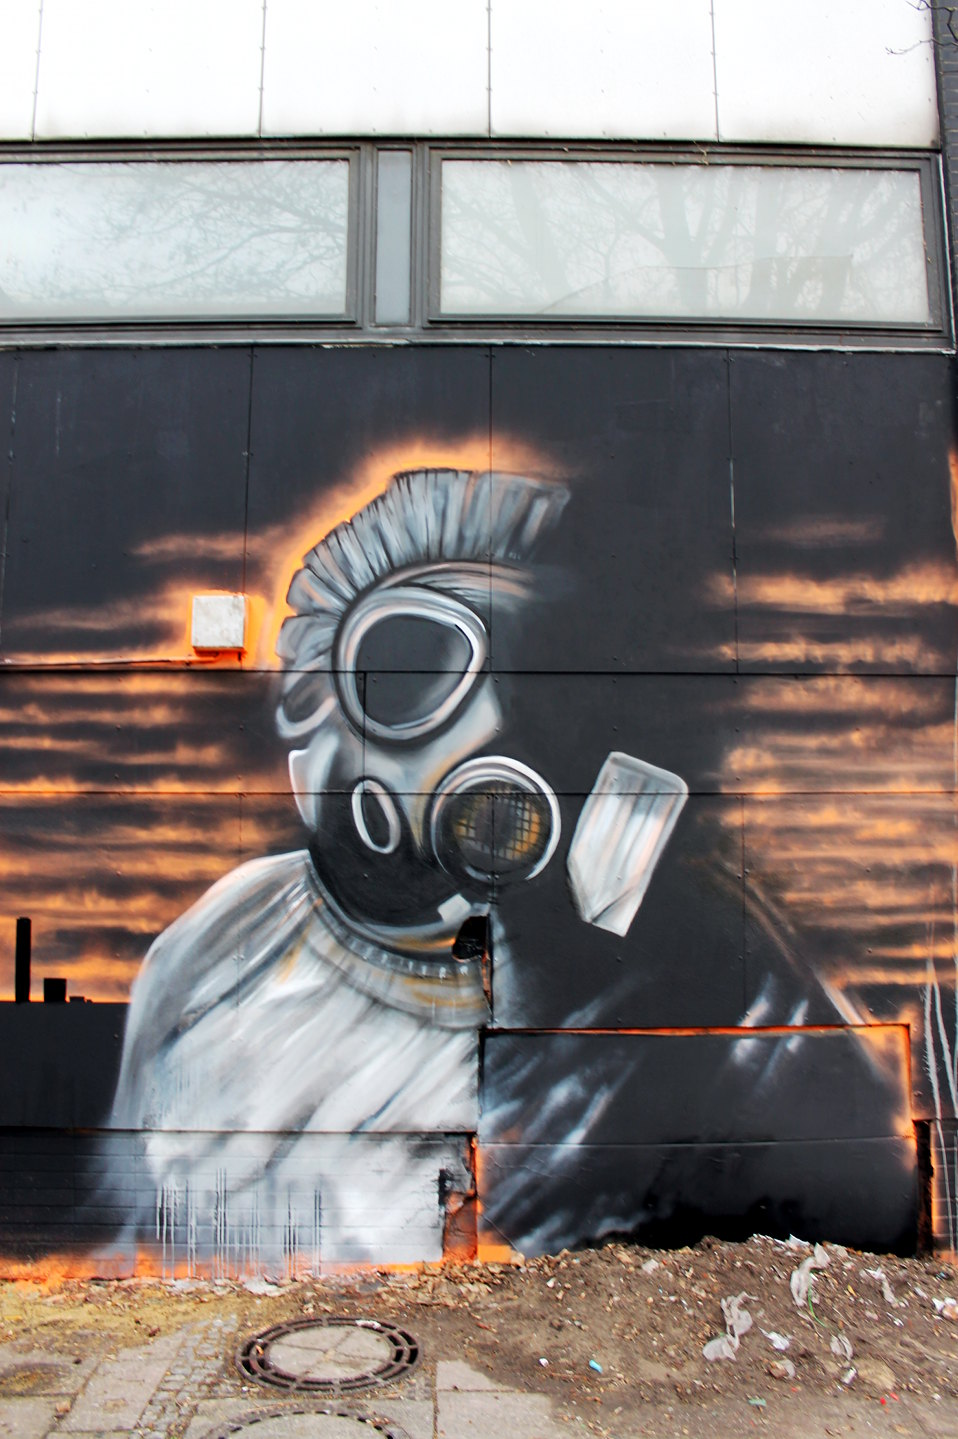 Big freehand sprayed Street Art by Plotbot KEN at Stattbad Wedding Berlin